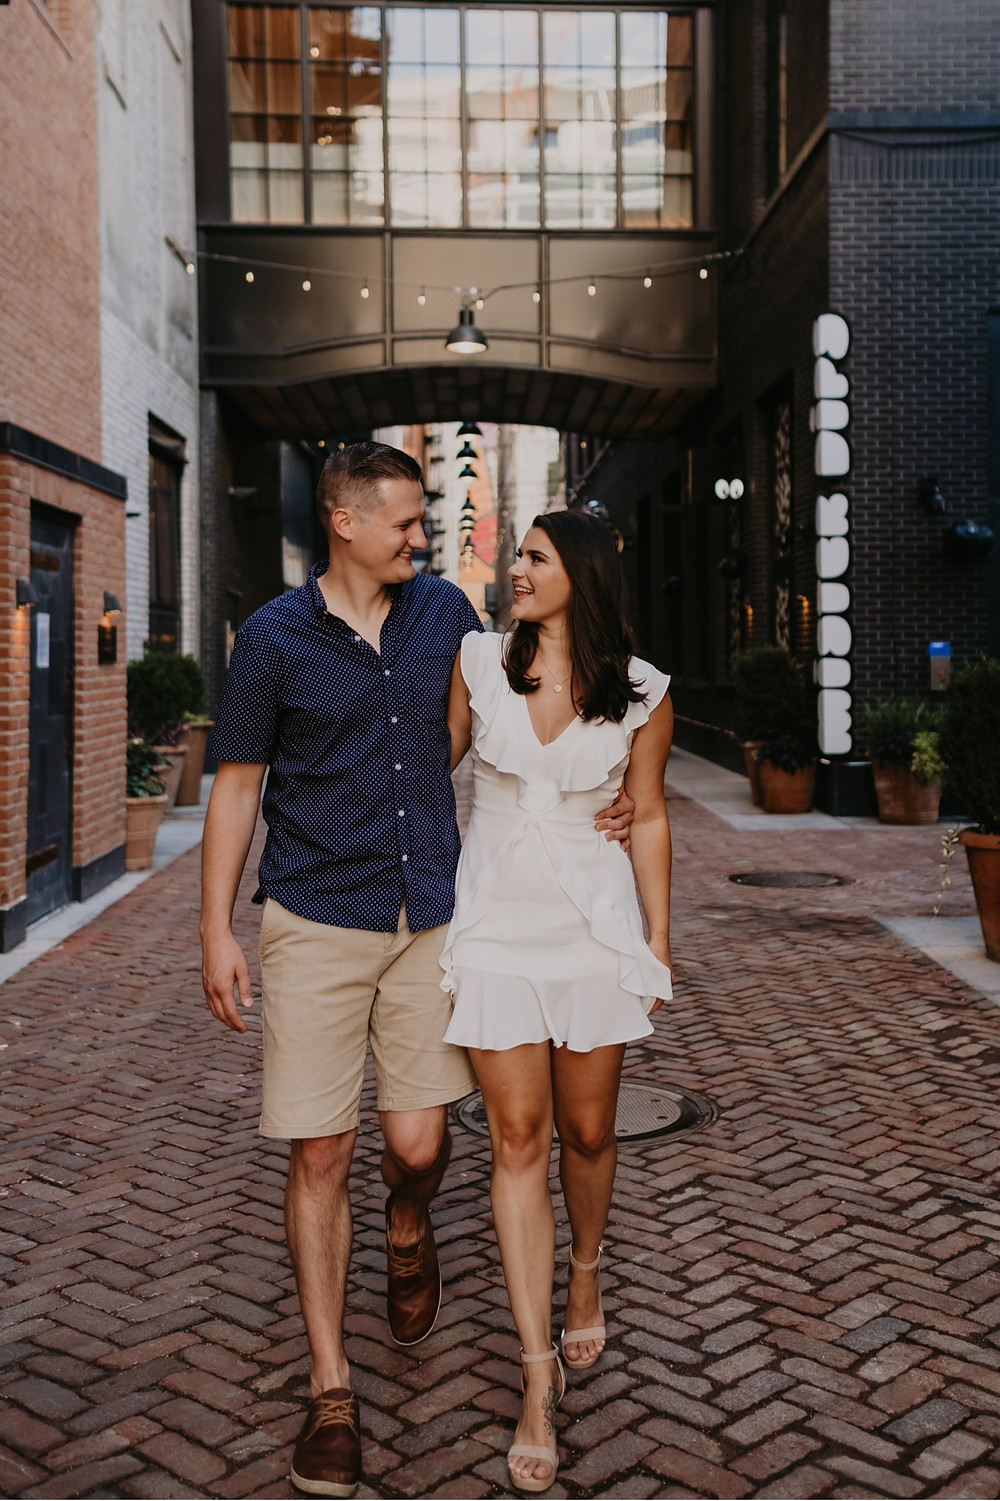 Couple walking down Shinola Alley in Detroit. Photographed by Nicole Leanne Photography.